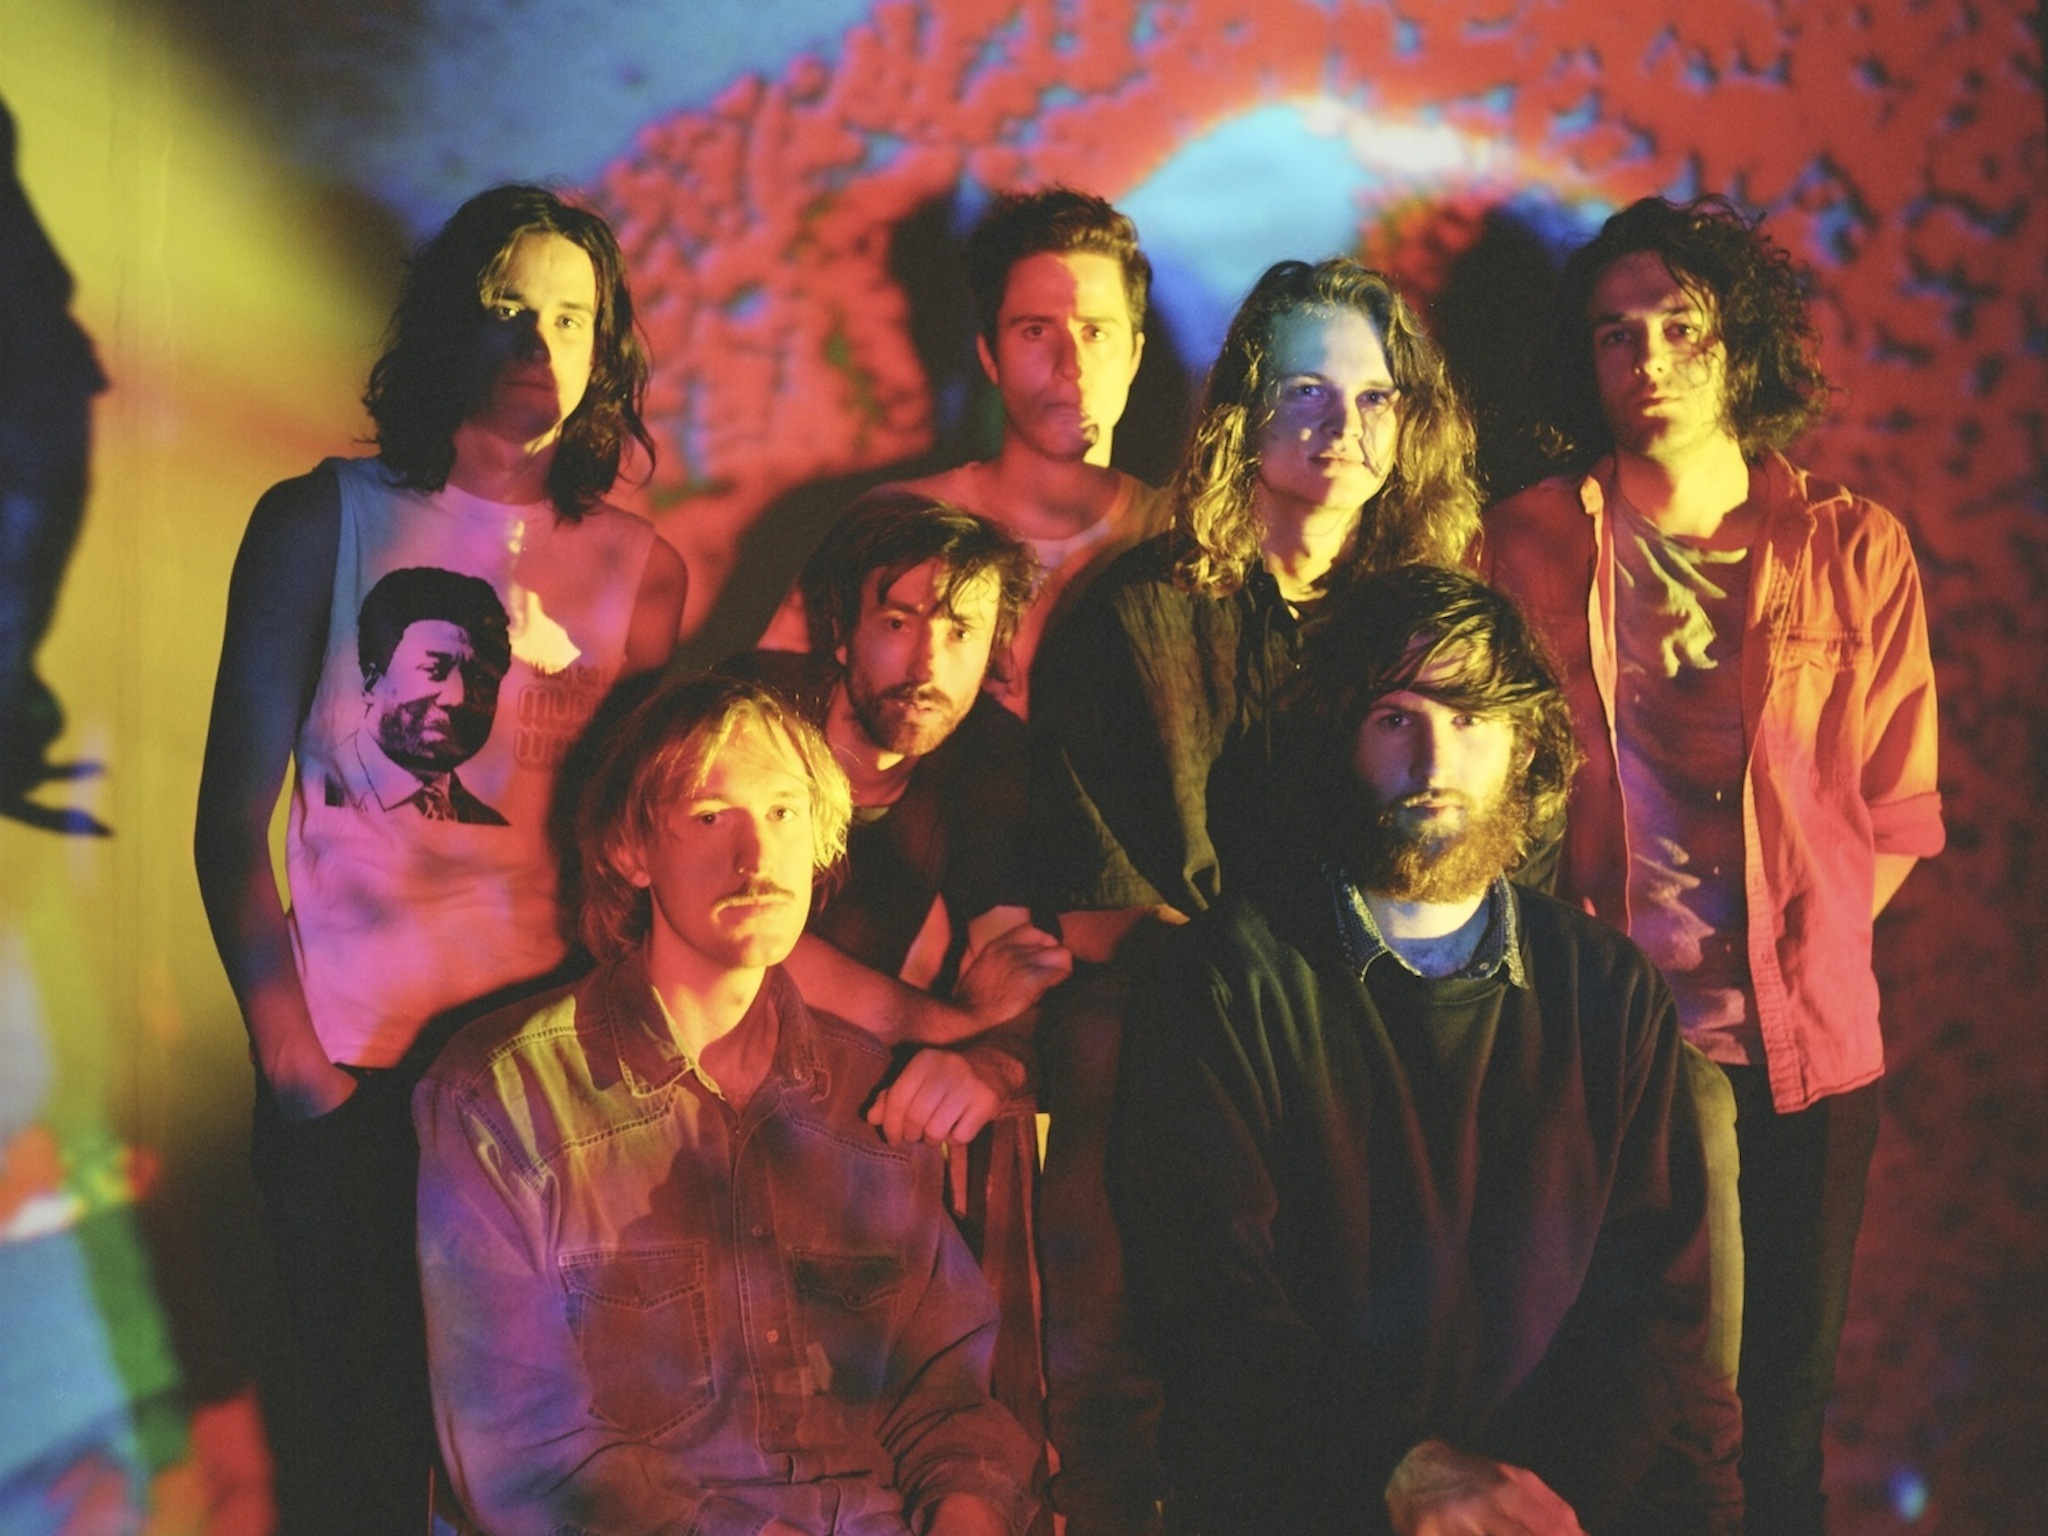 King Gizzard & the Lizard Wizard por primera vez en la CDMX